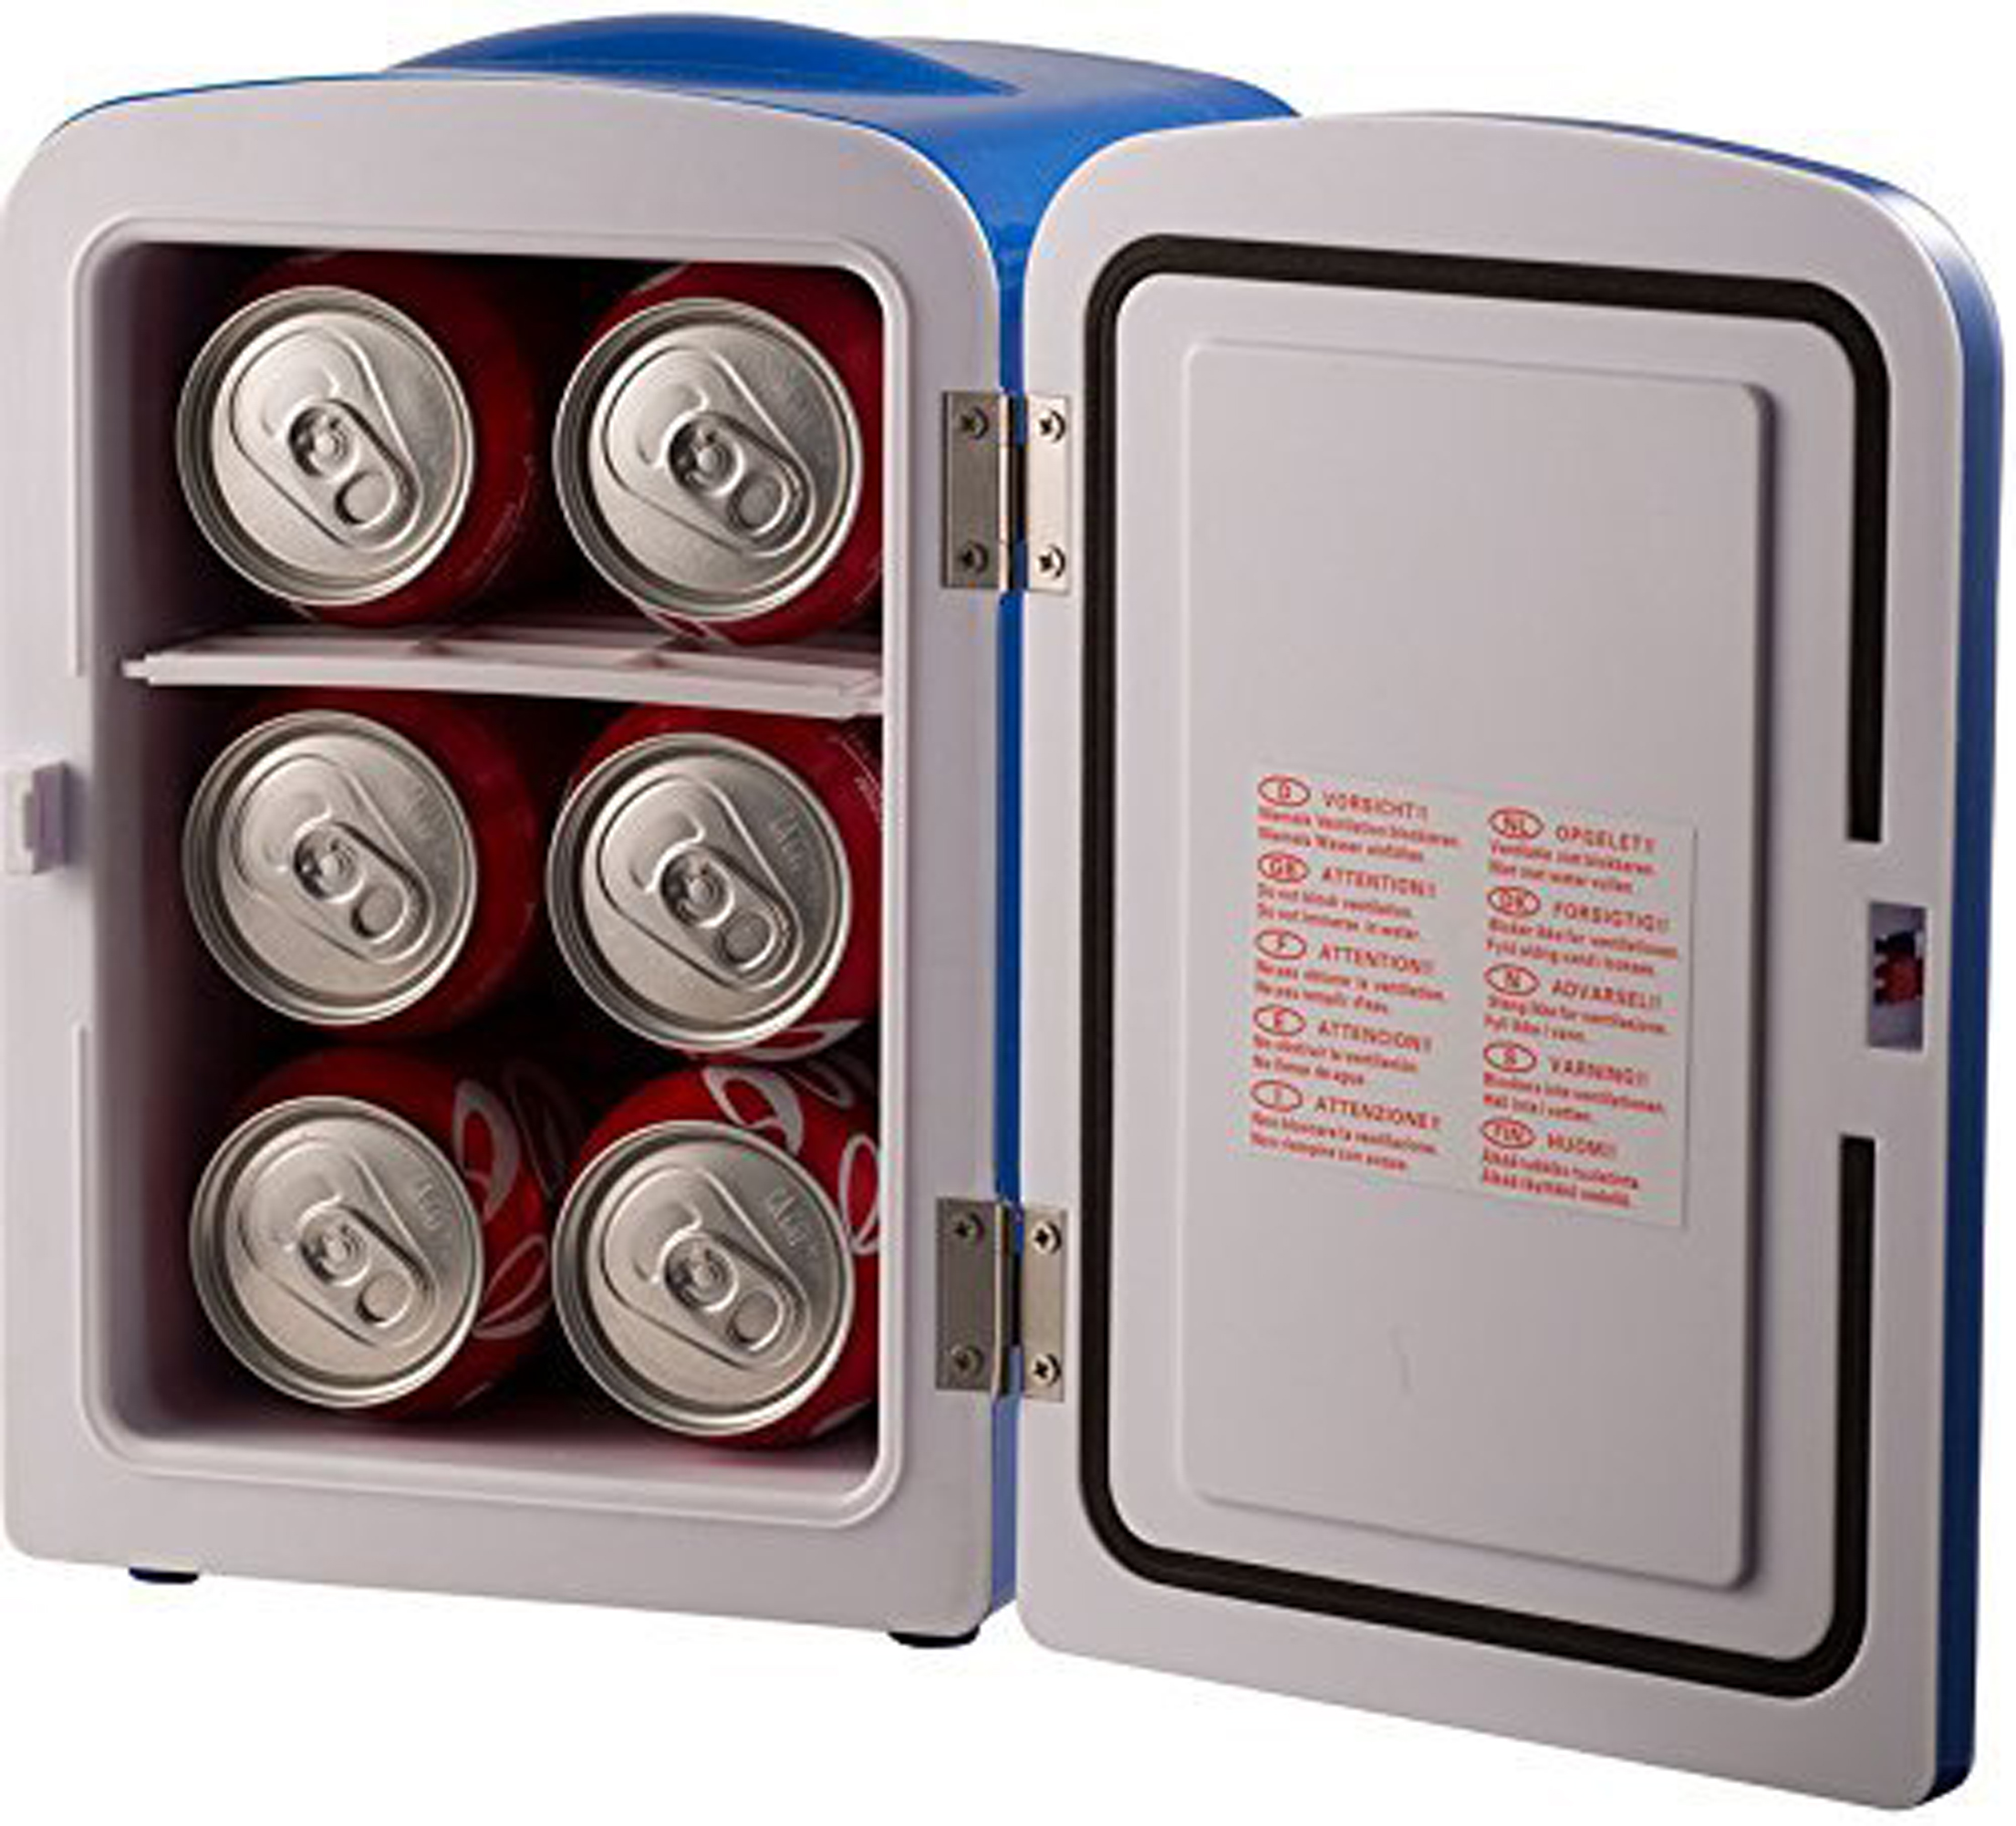 Gourmia GMF-600B Portable 6 Can Mini Fridge Cooler and Warmer for Home, Office, Car or Boat AC & DC, Blue